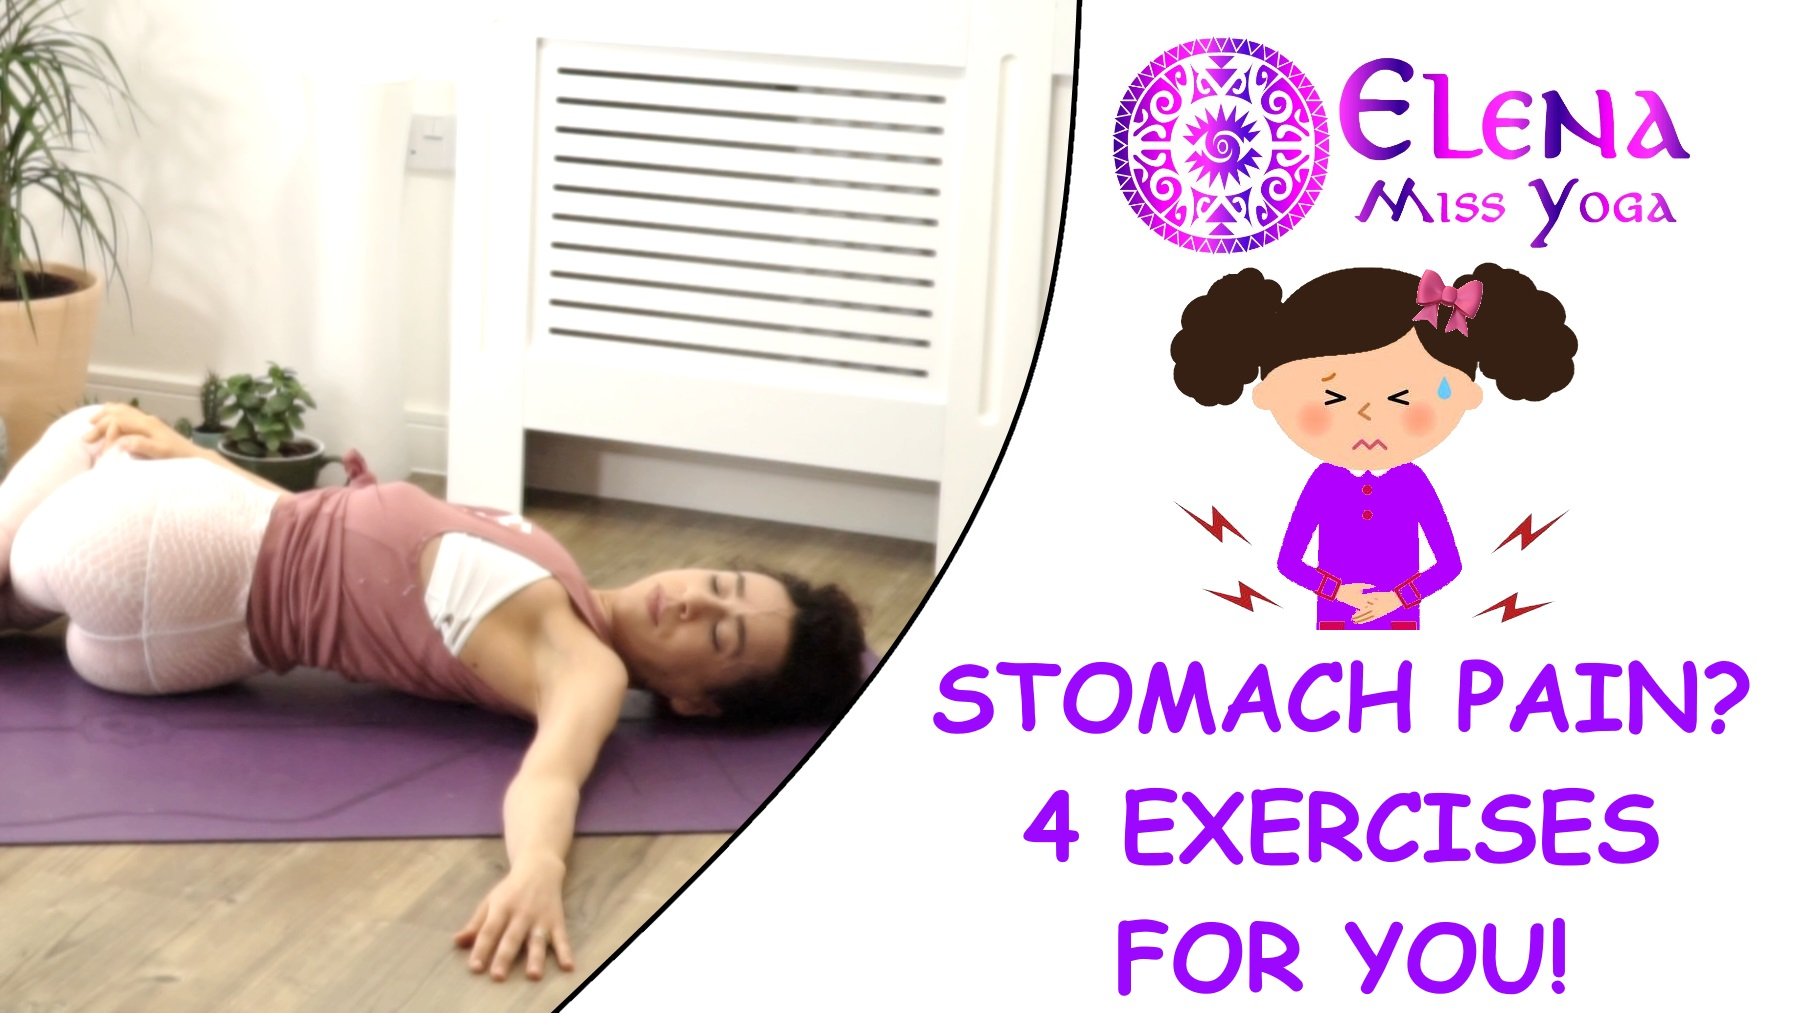 STOMACH PAIN? 4 EXERCISES FOR YOU